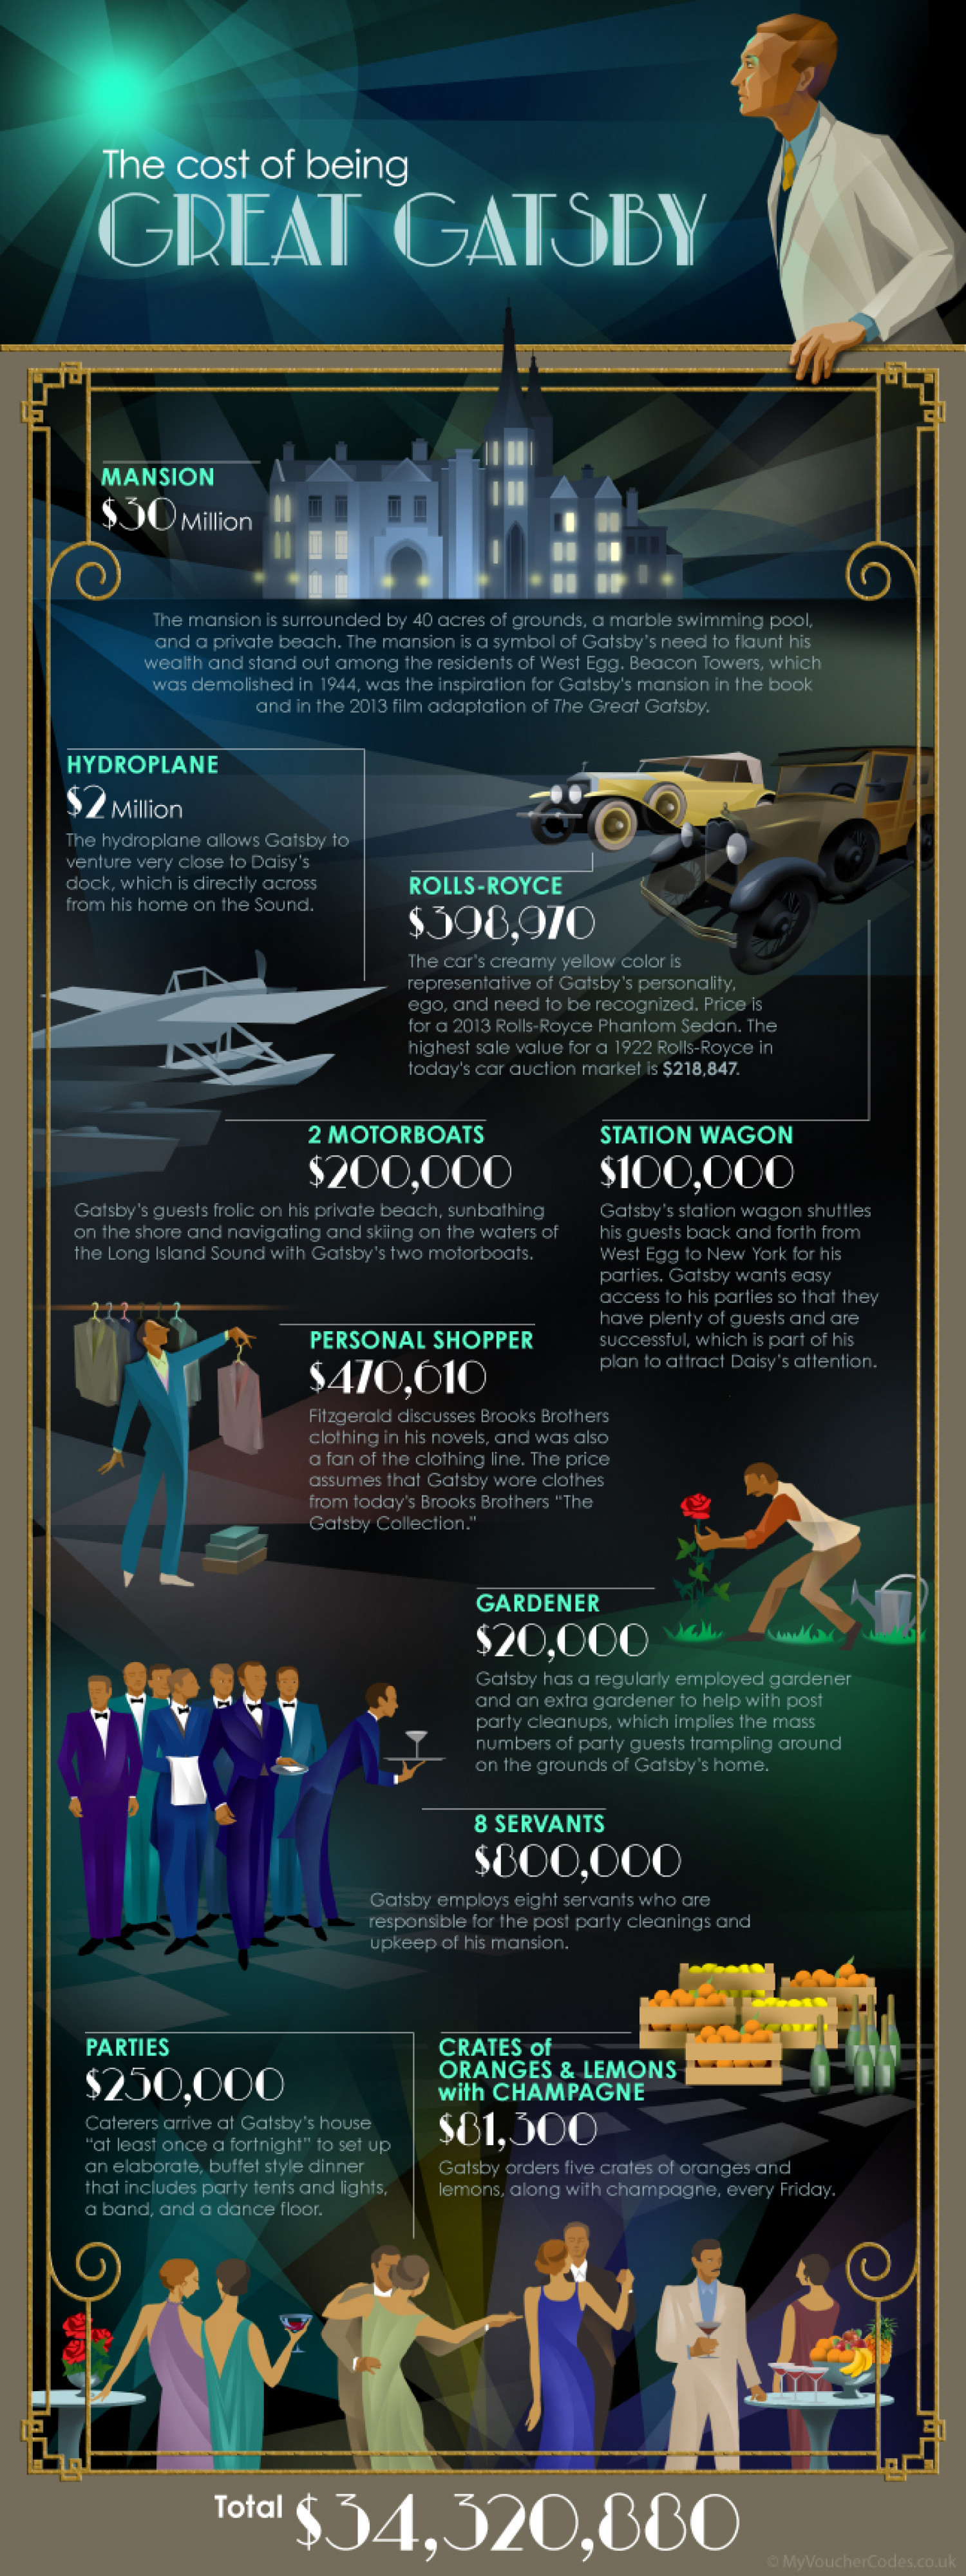 The Cost of Being Great Gatsby Infographic